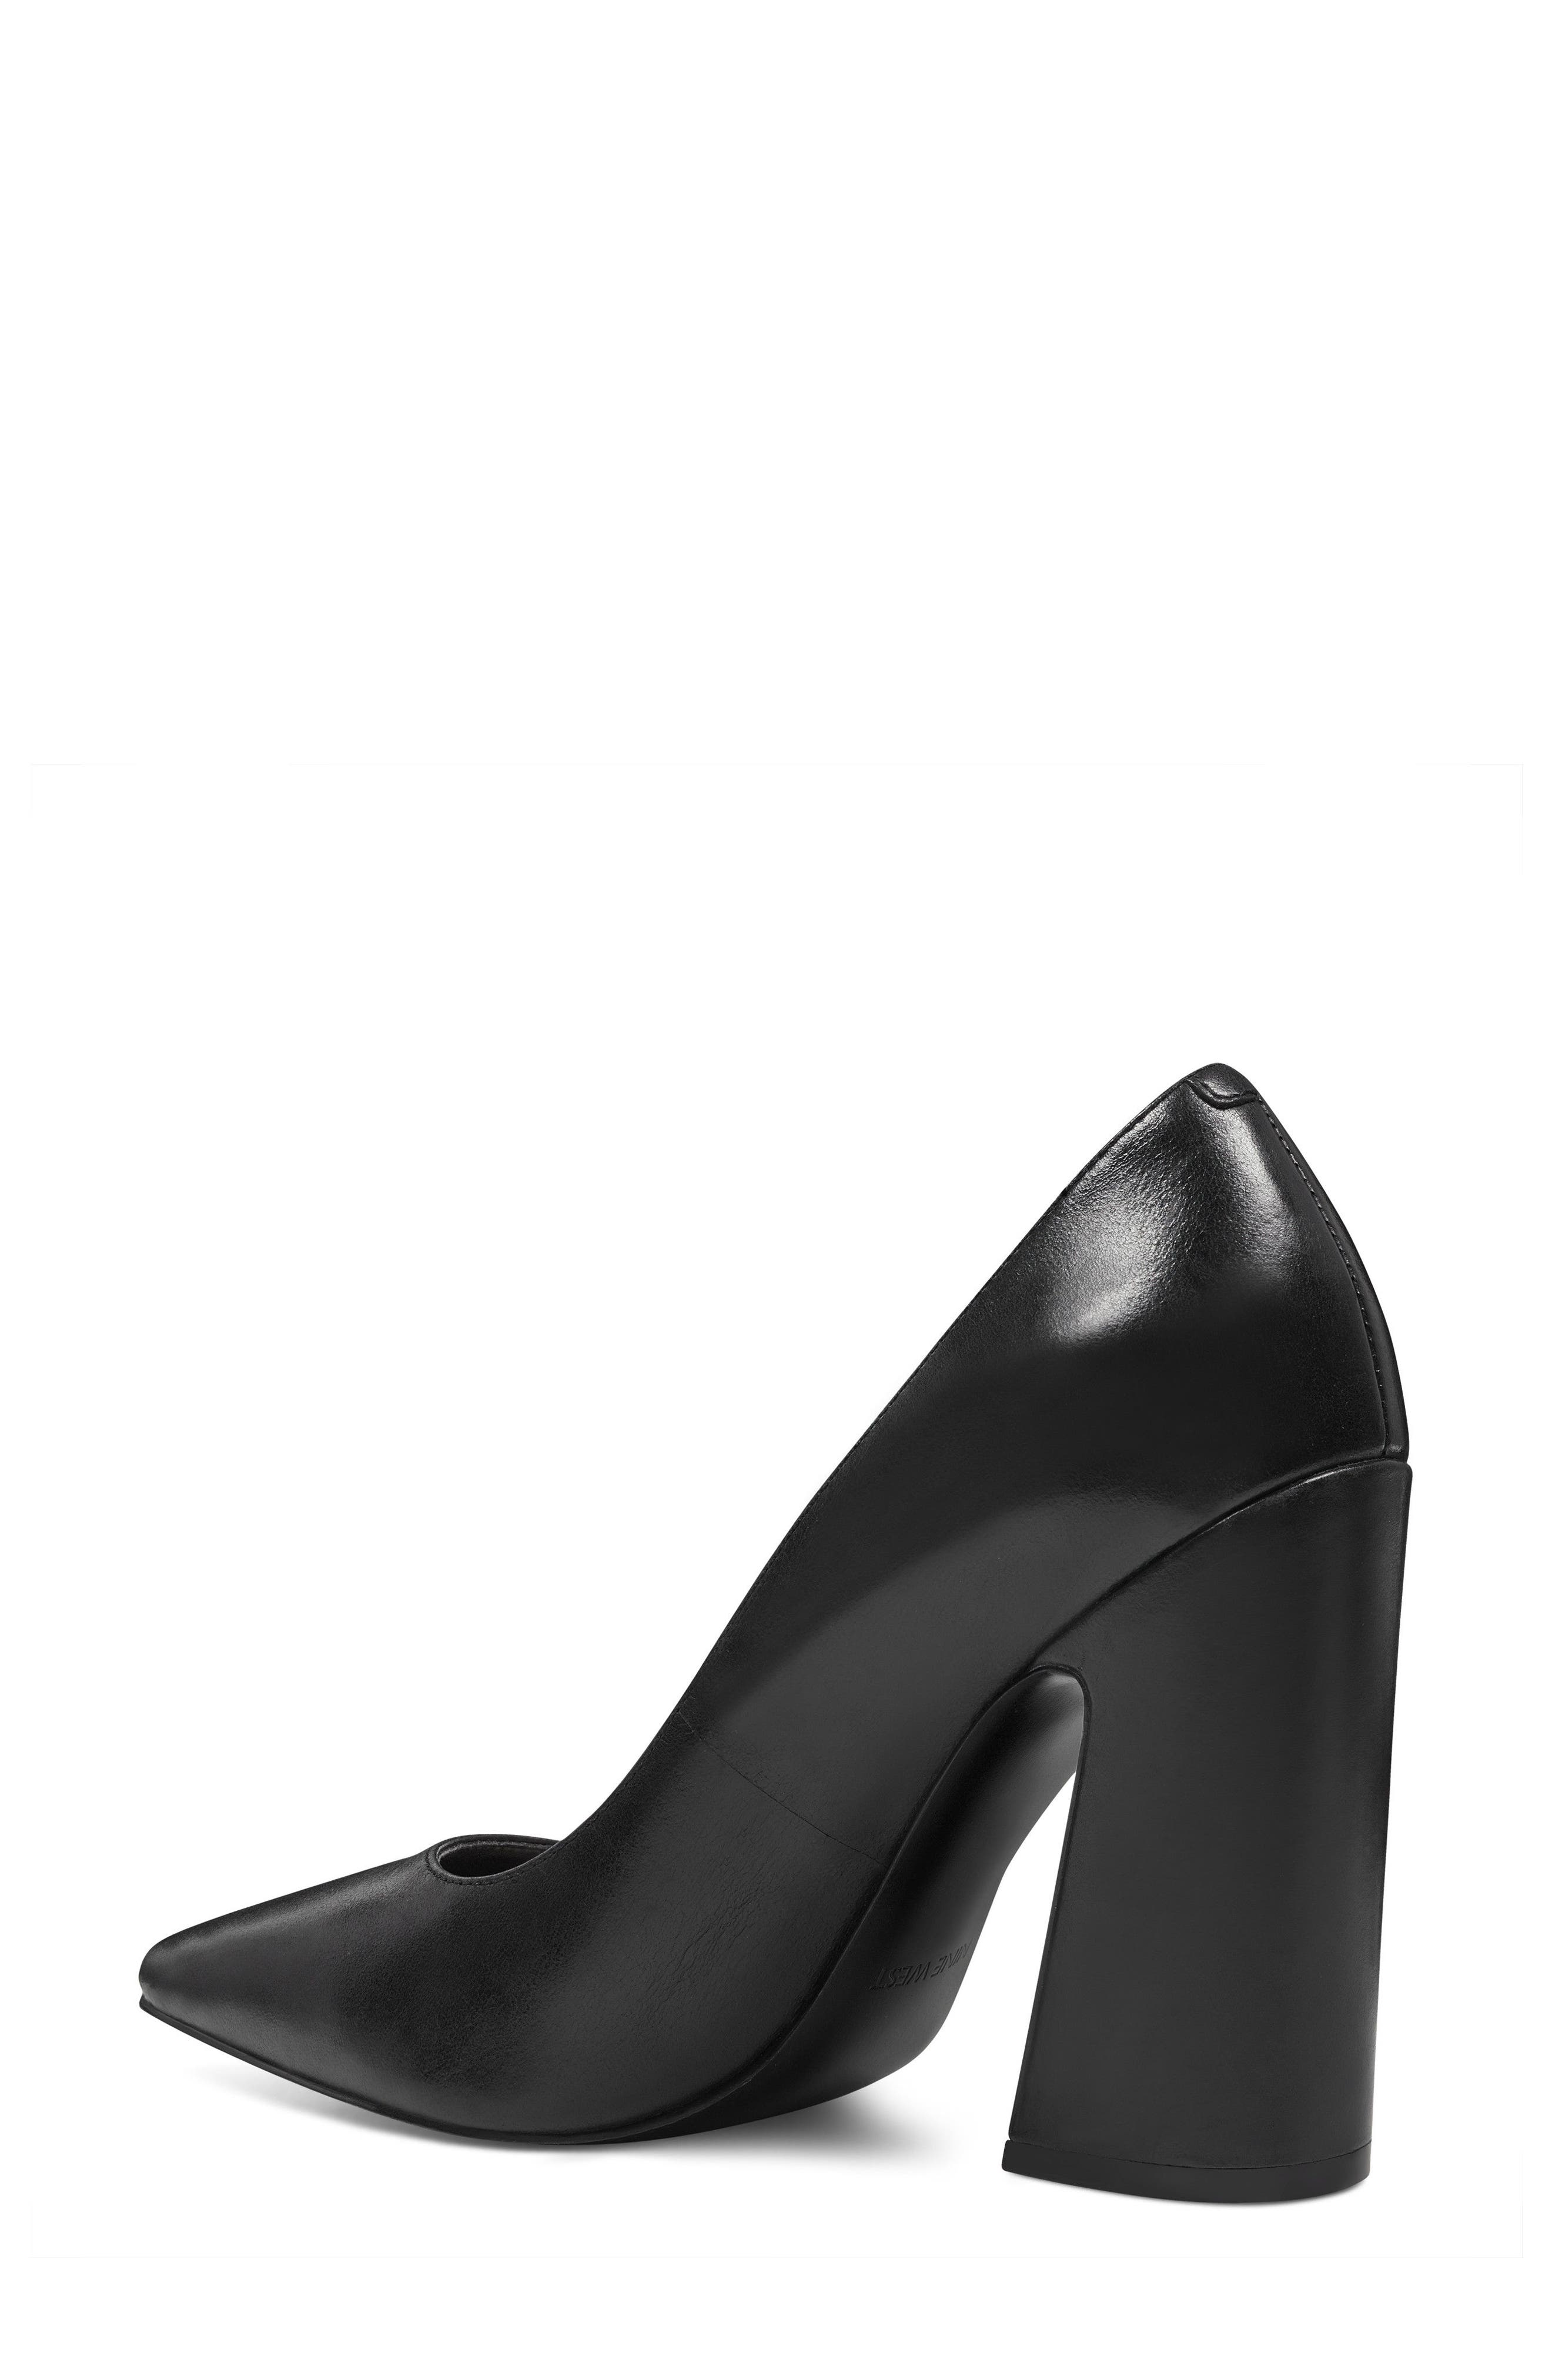 NINE WEST,                             Henra Pointy Toe Pump,                             Alternate thumbnail 2, color,                             001